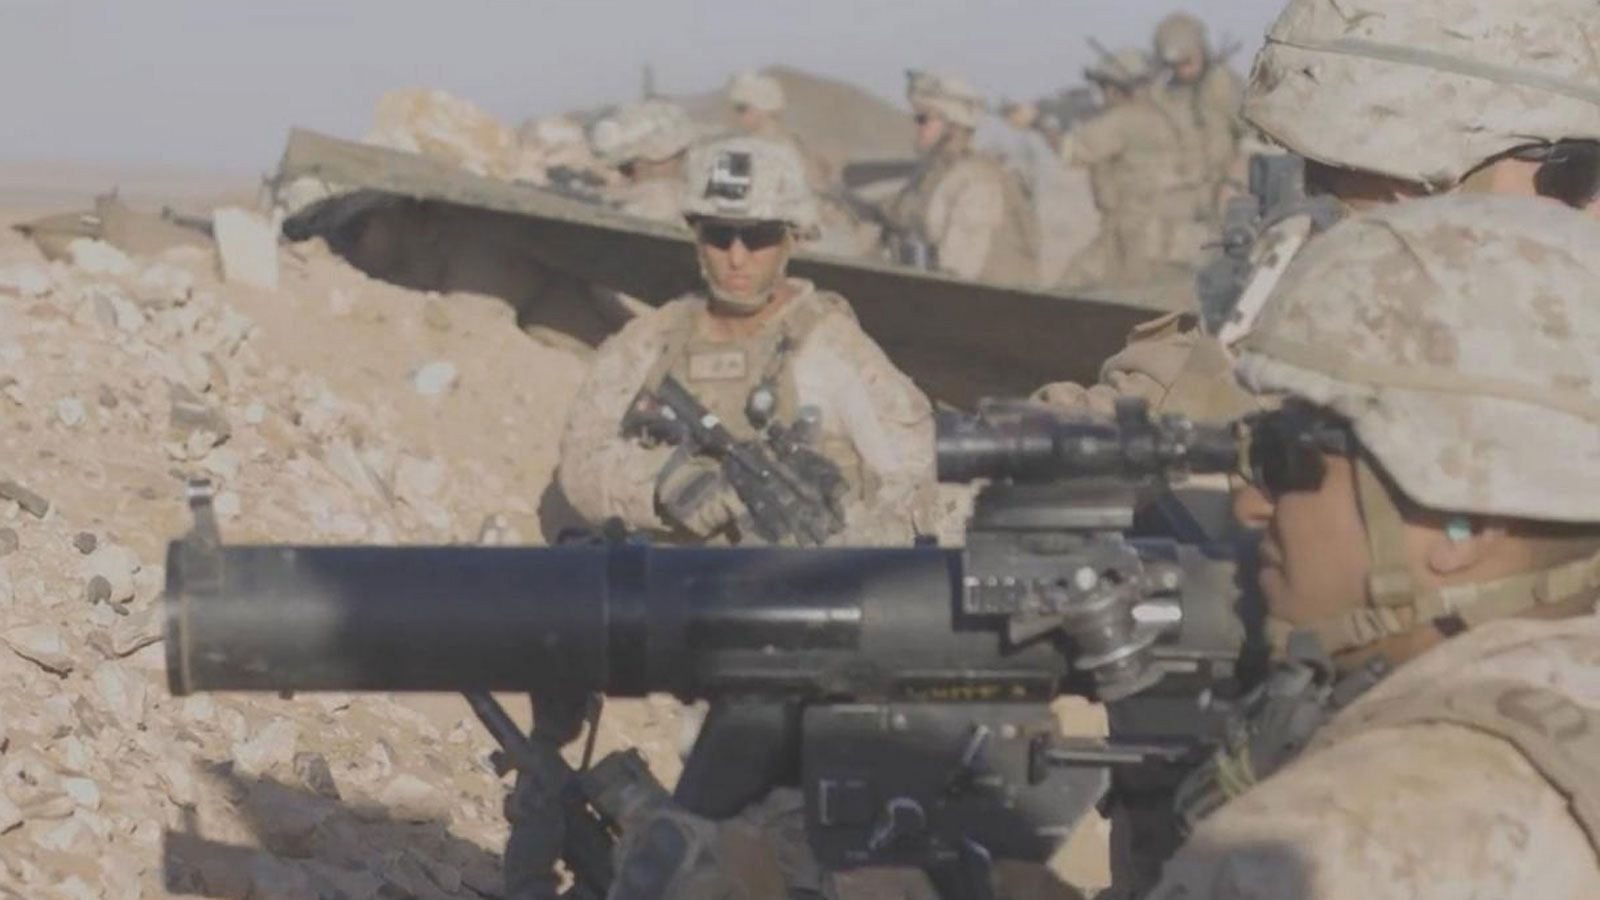 abcnews.go.com - Elizabeth McLaughlin and Luis Martinez - American troops killed in bomb blast in northern Syria